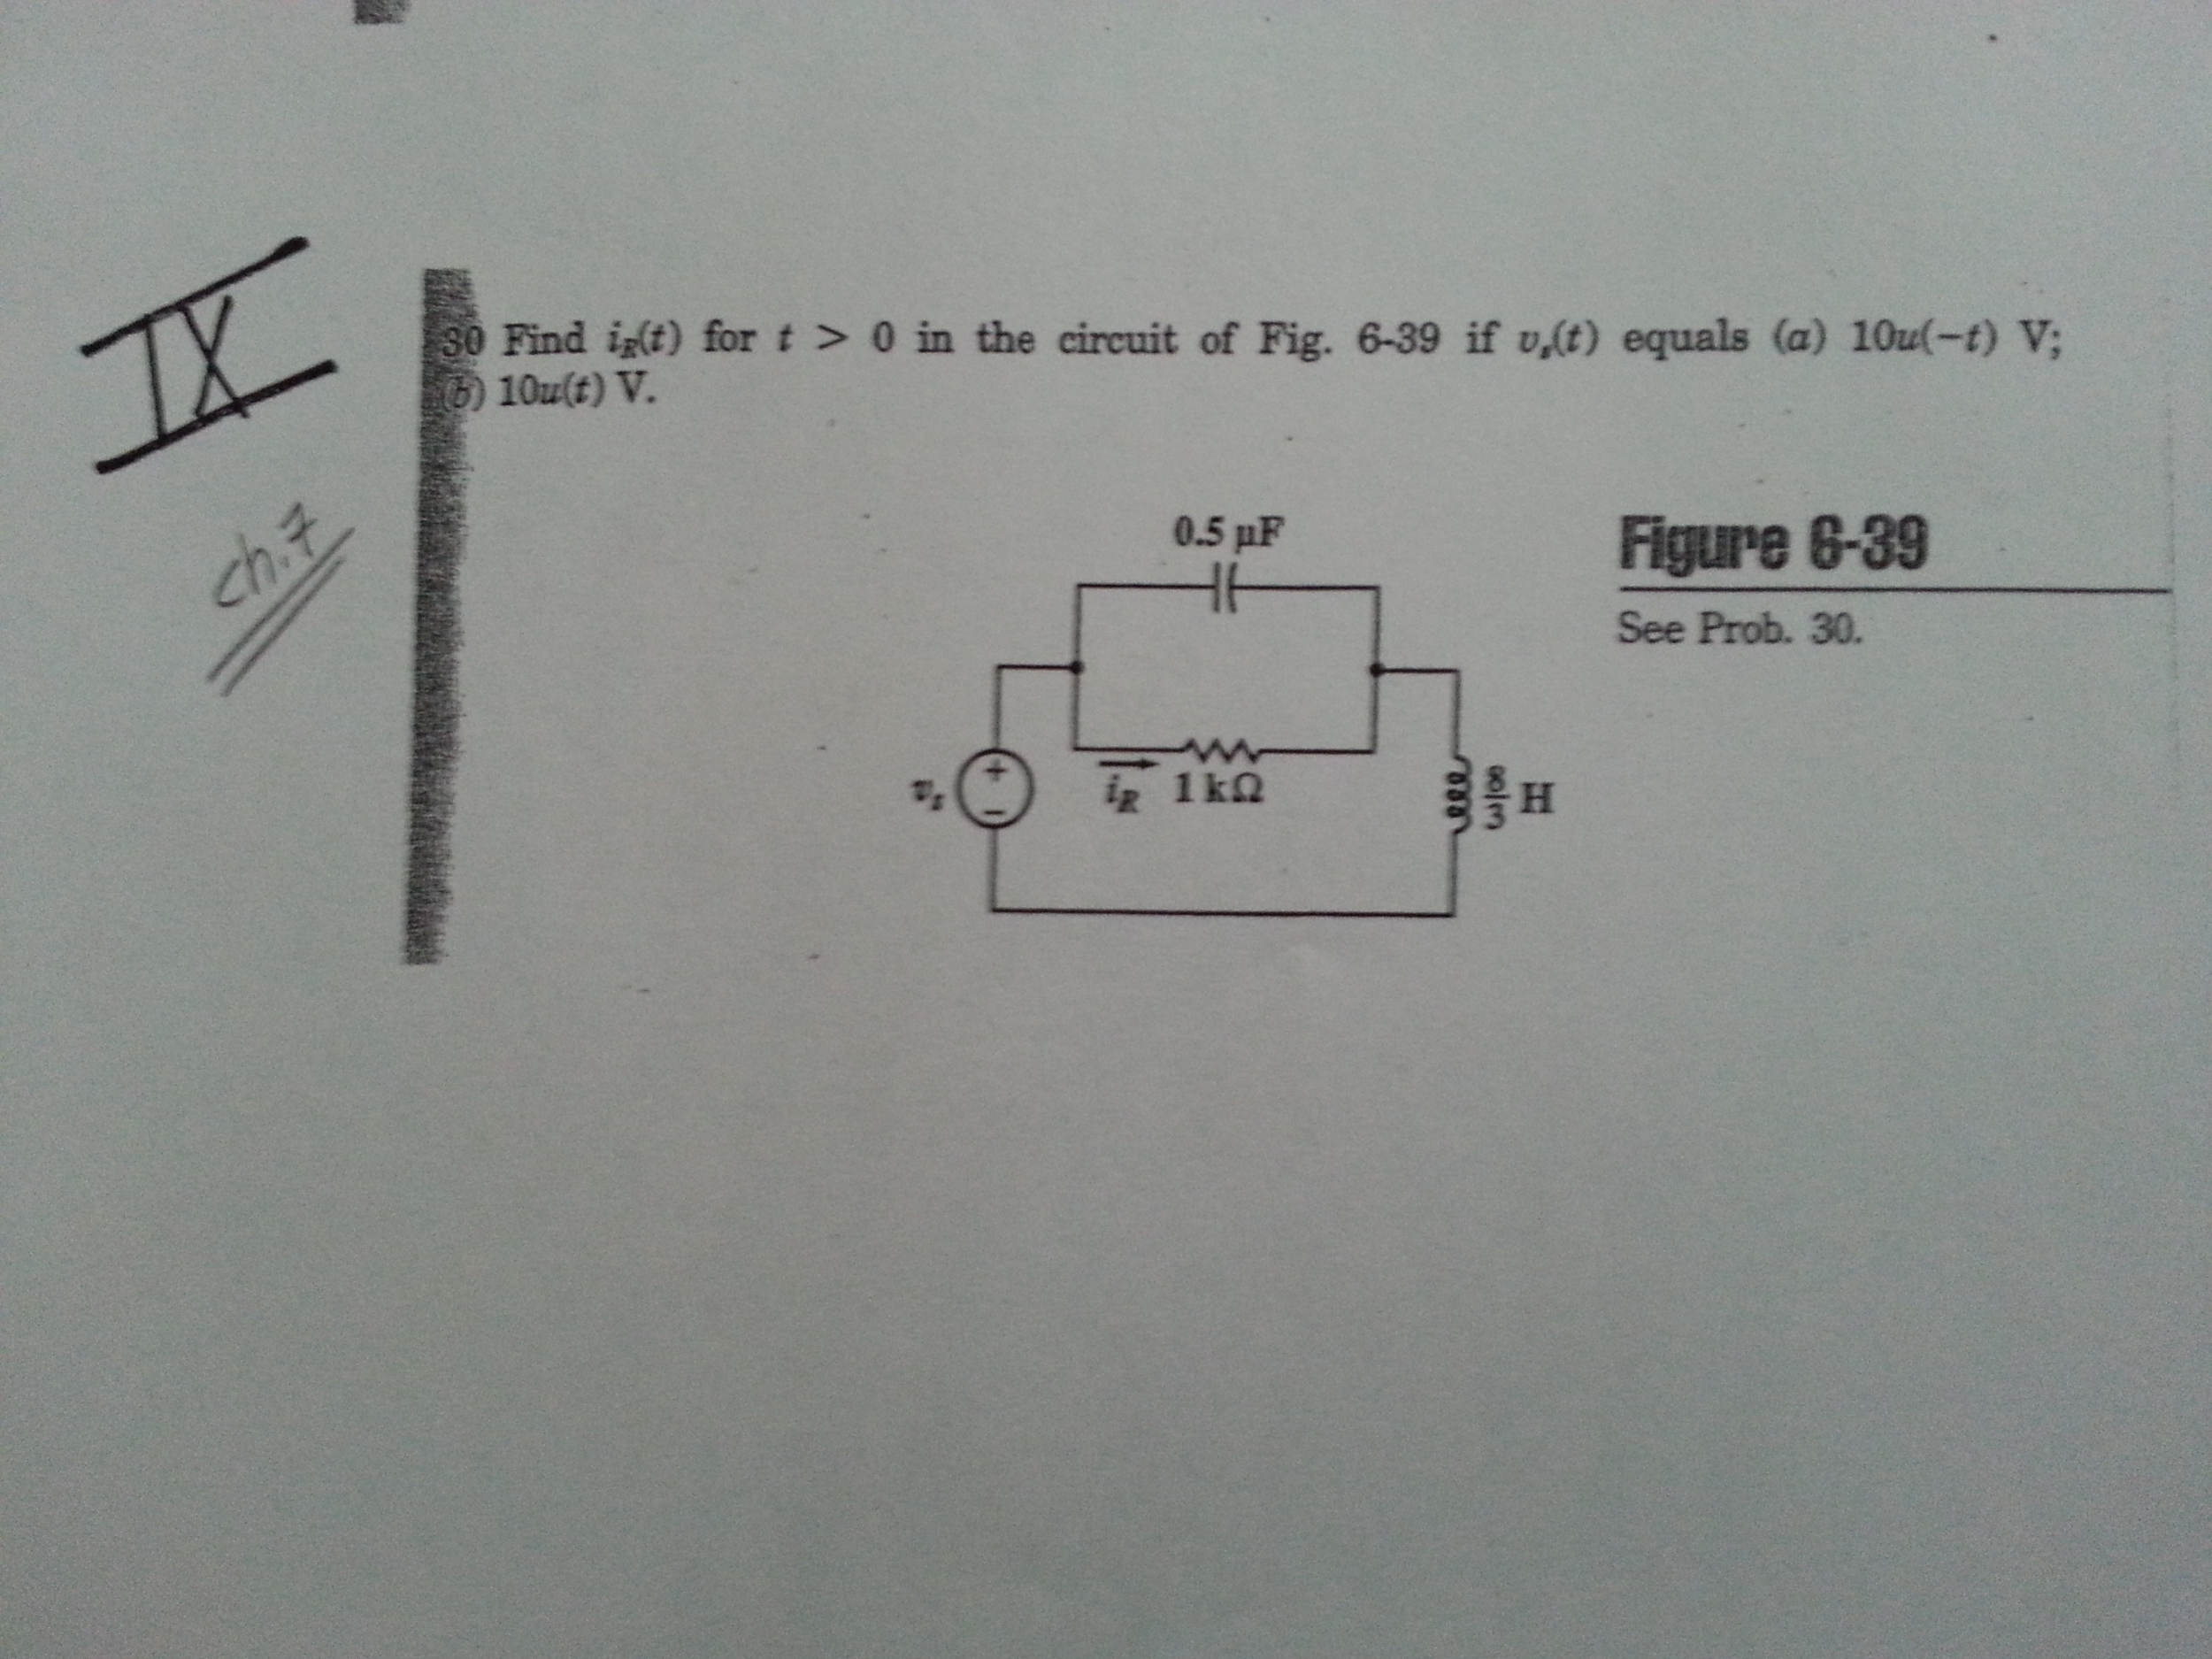 Find ig(f) for t > 0 in the circuit of Fig. 6-39 i